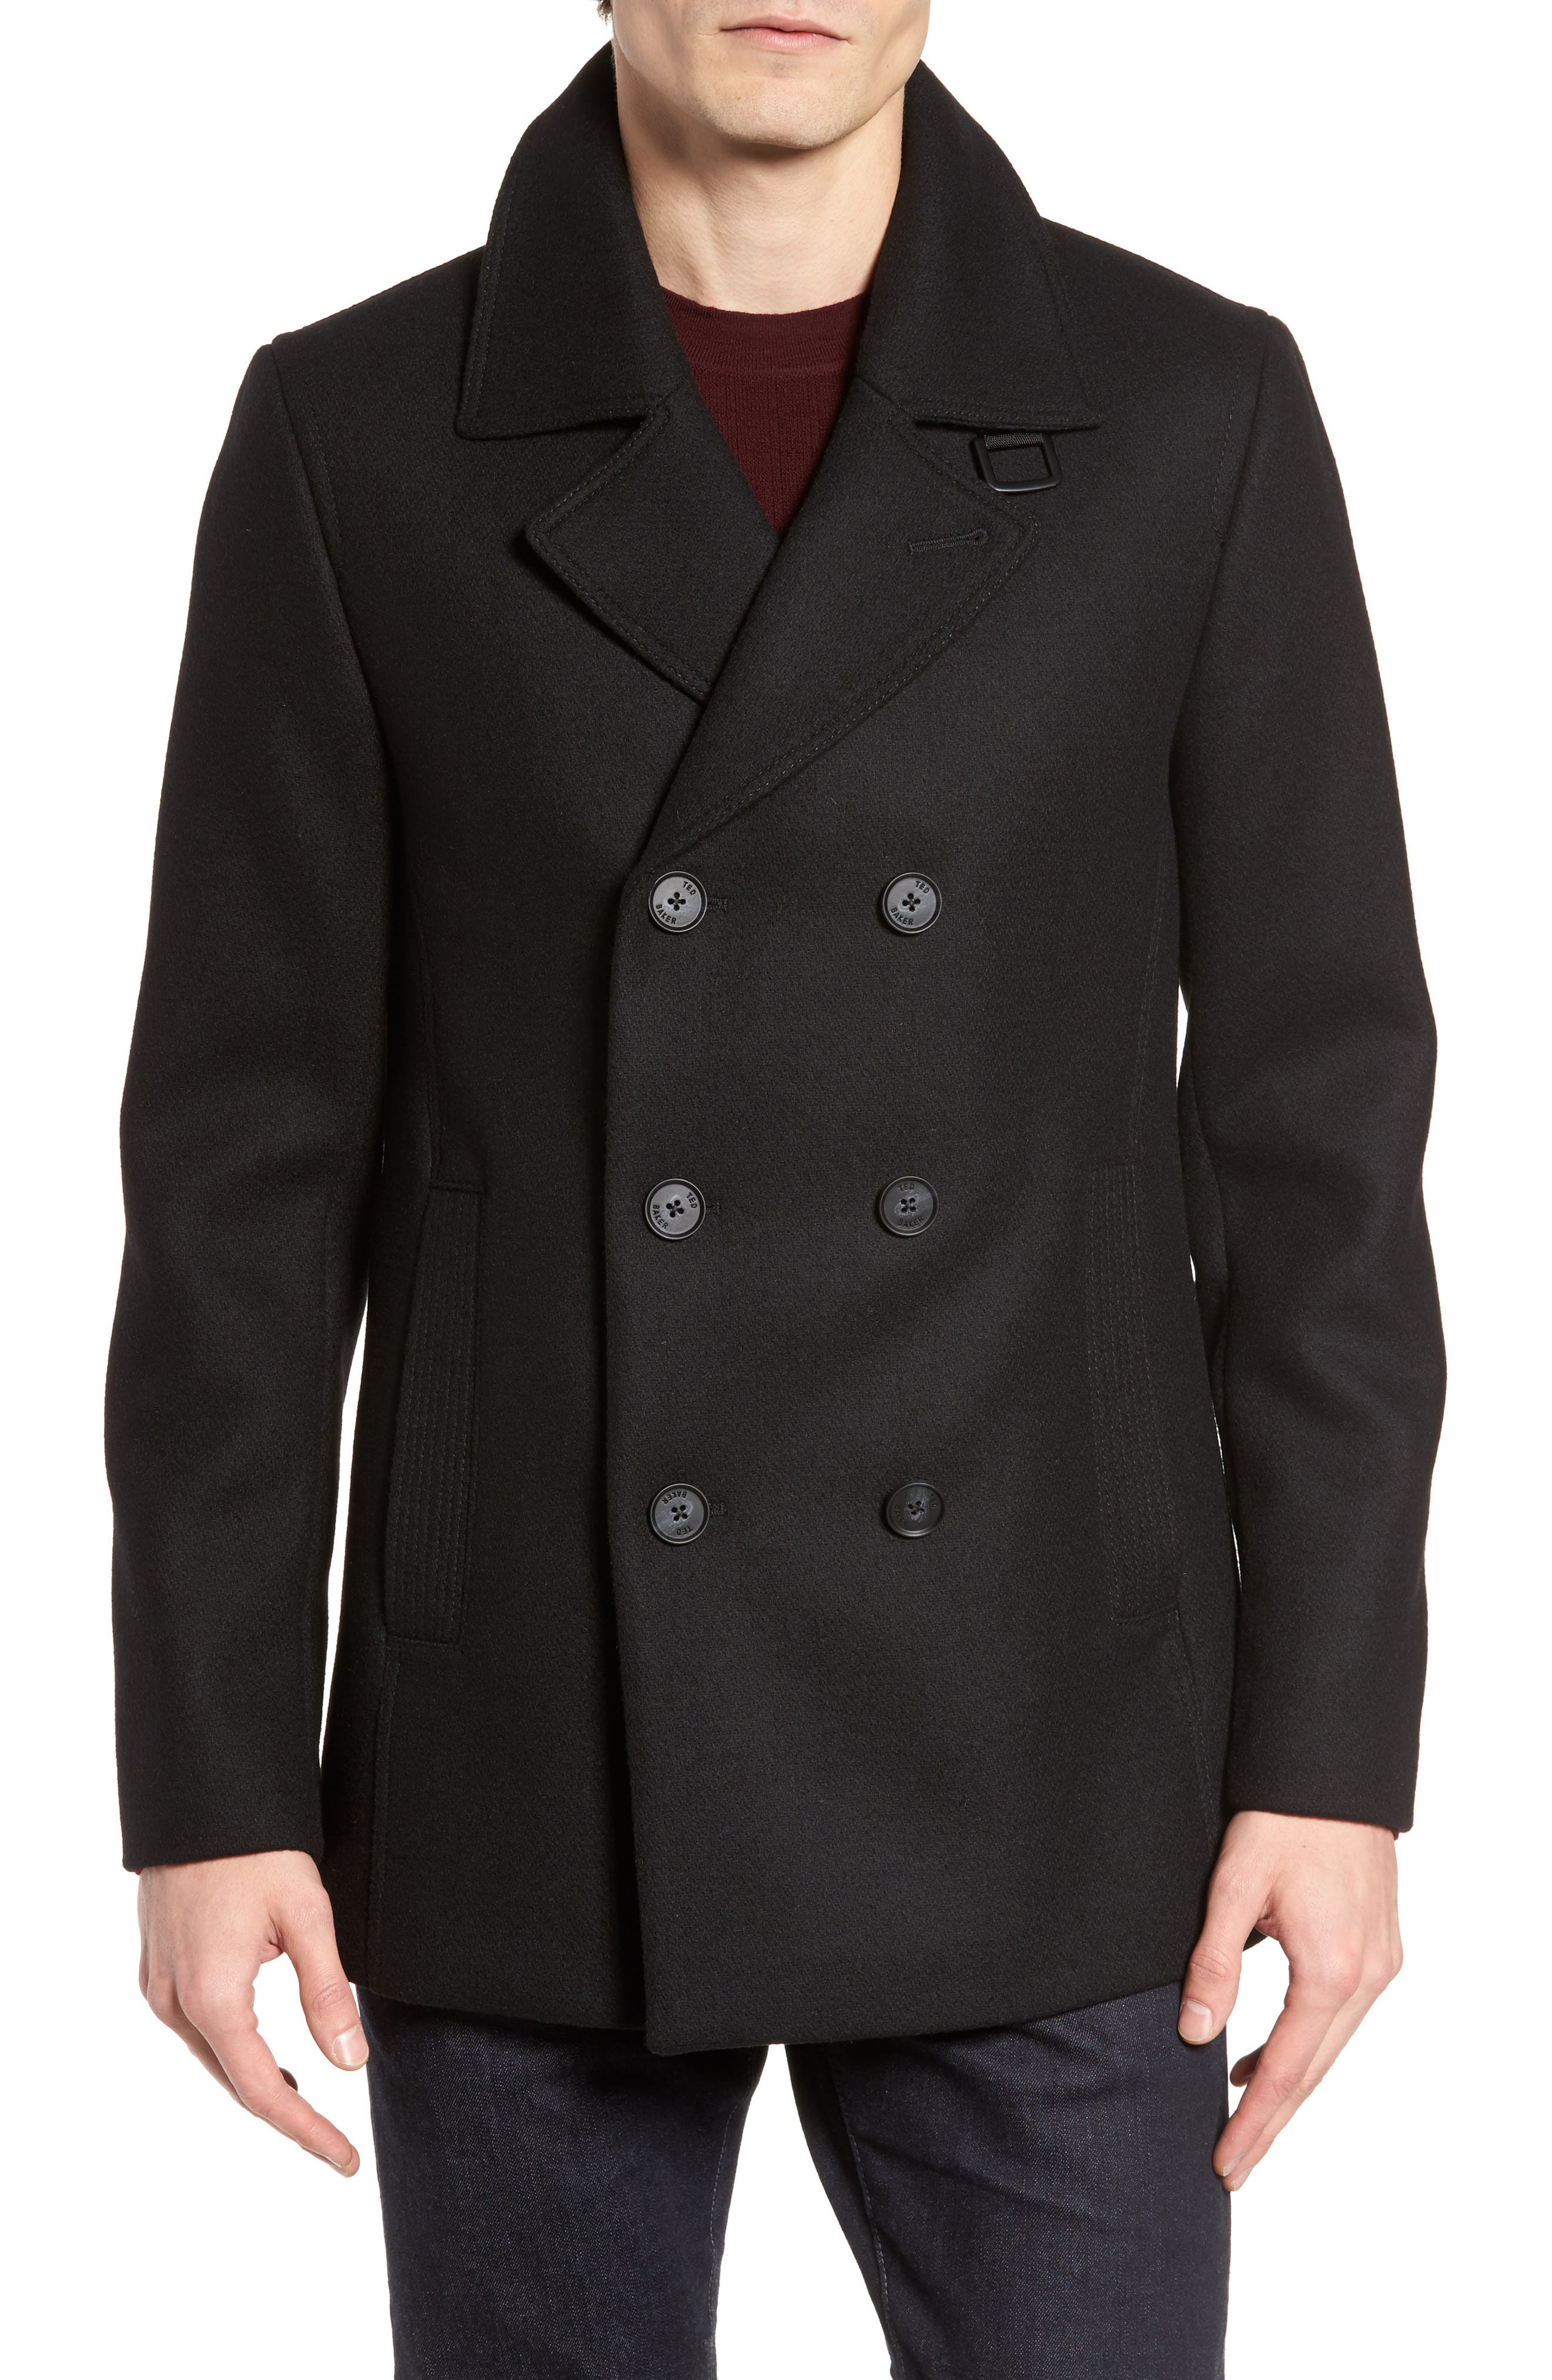 Alternate Image 1 Selected - Ted Baker London Zachary Trim Fit Double Breasted Peacoat